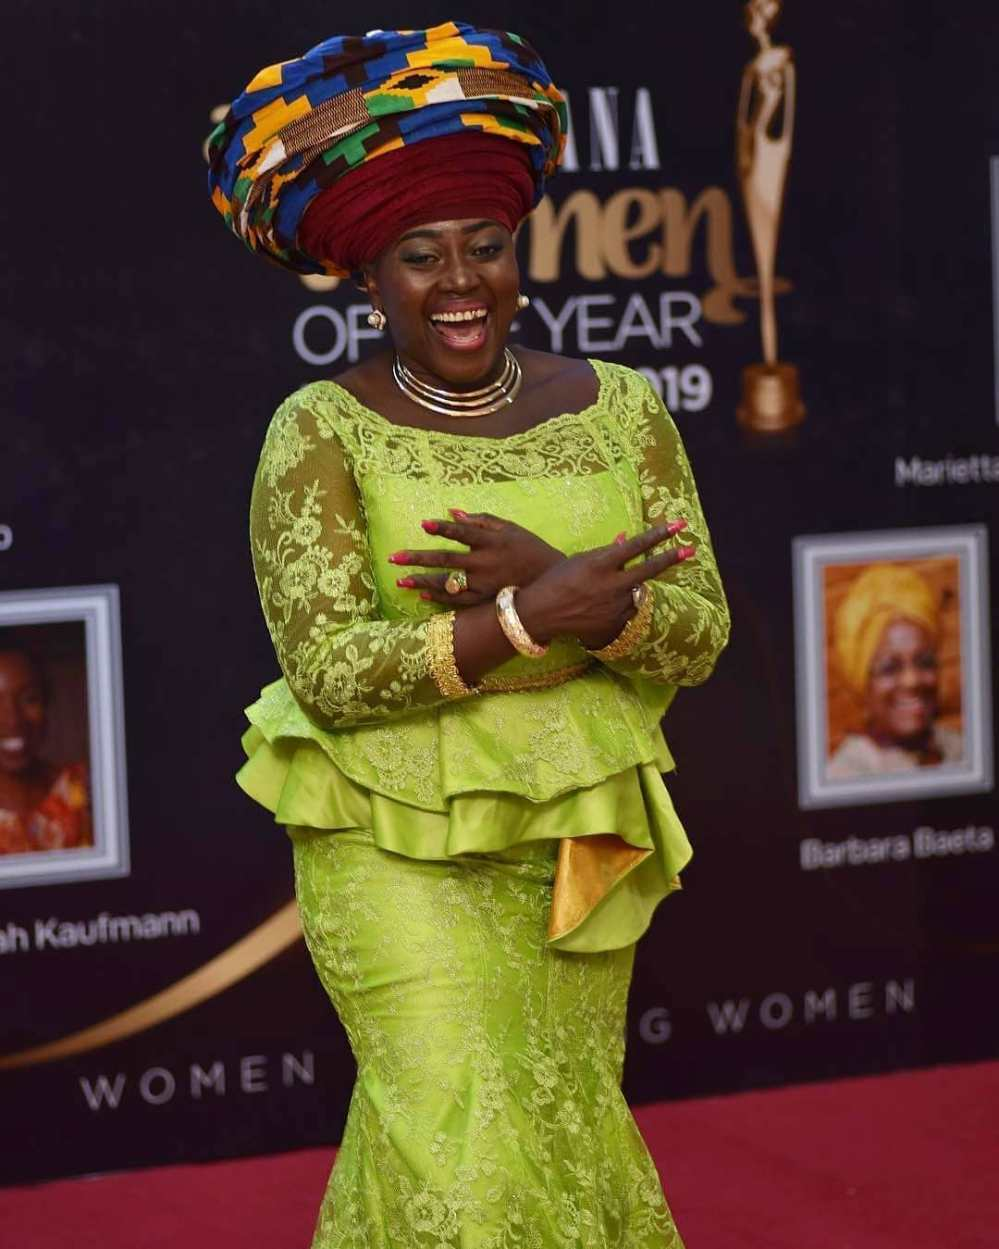 Ghana Women of the Year Honours 2019 Accra